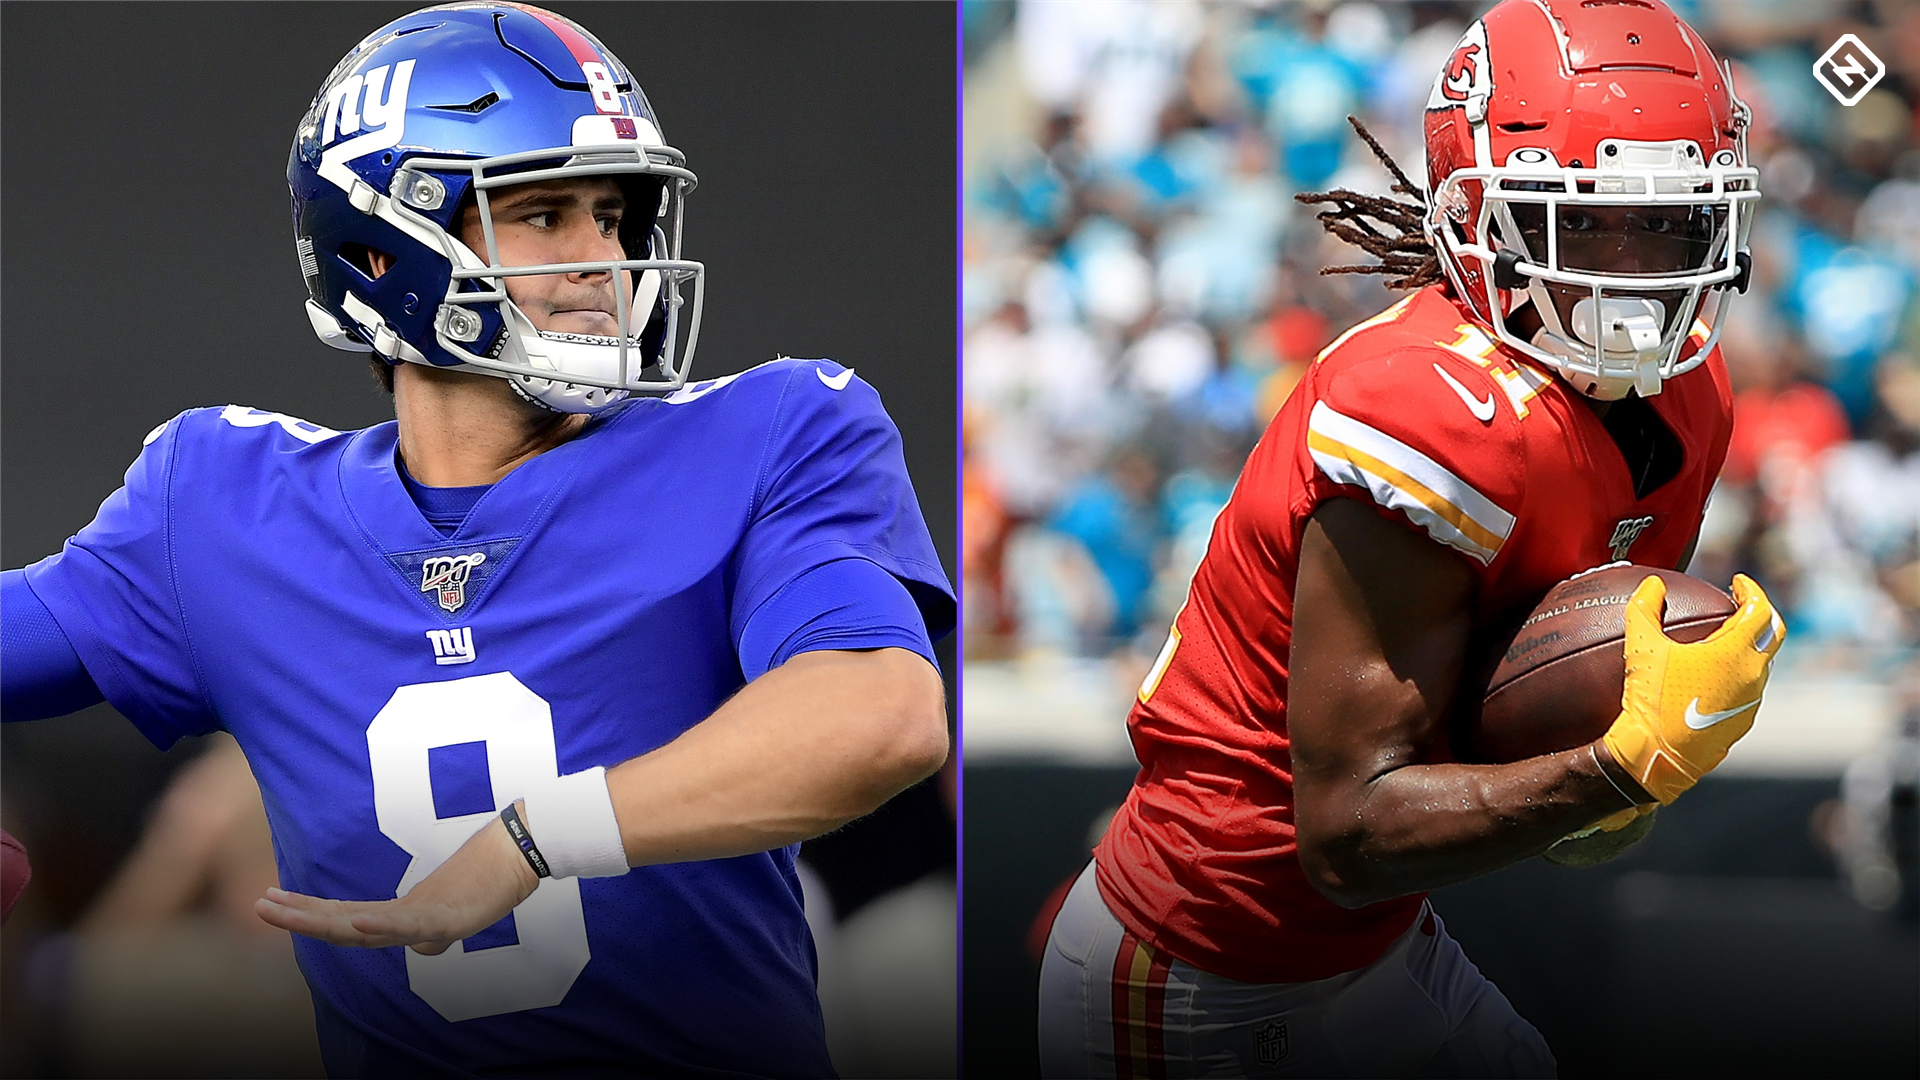 Week 3 Fantasy Sleepers: Daniel Jones, Demarcus Robinson among risks worth starting